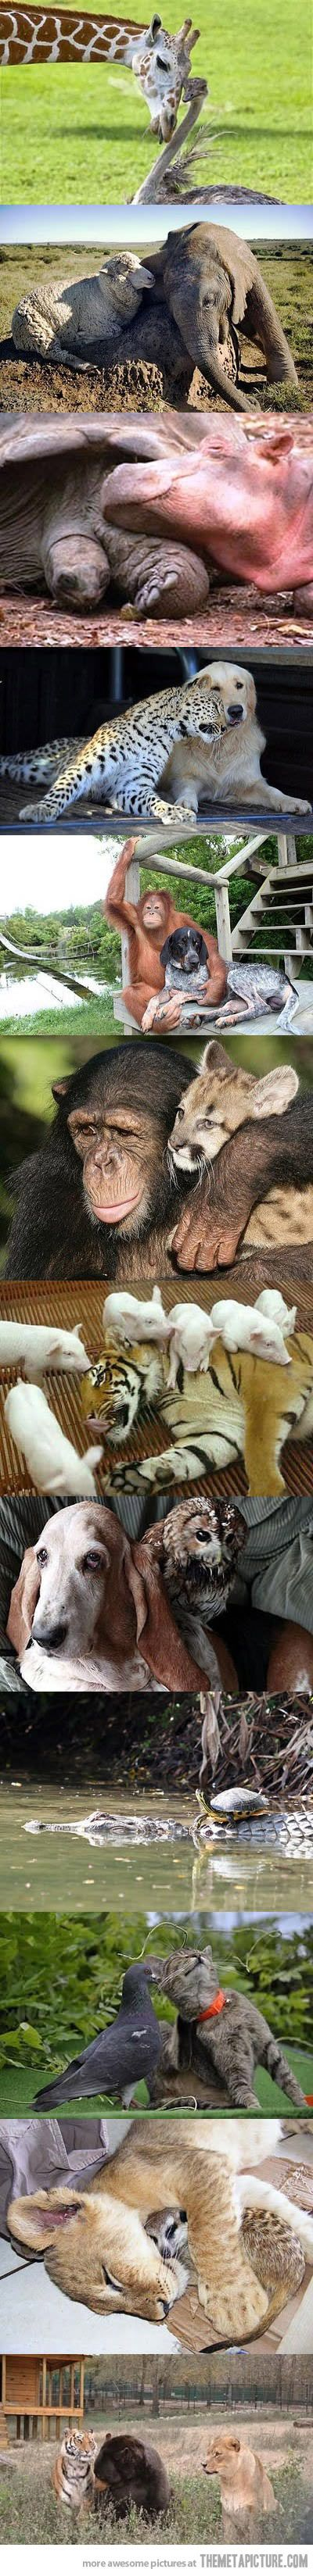 Unlikely Friendships.... Animals - I LOVE, LOVE, LOVE this!